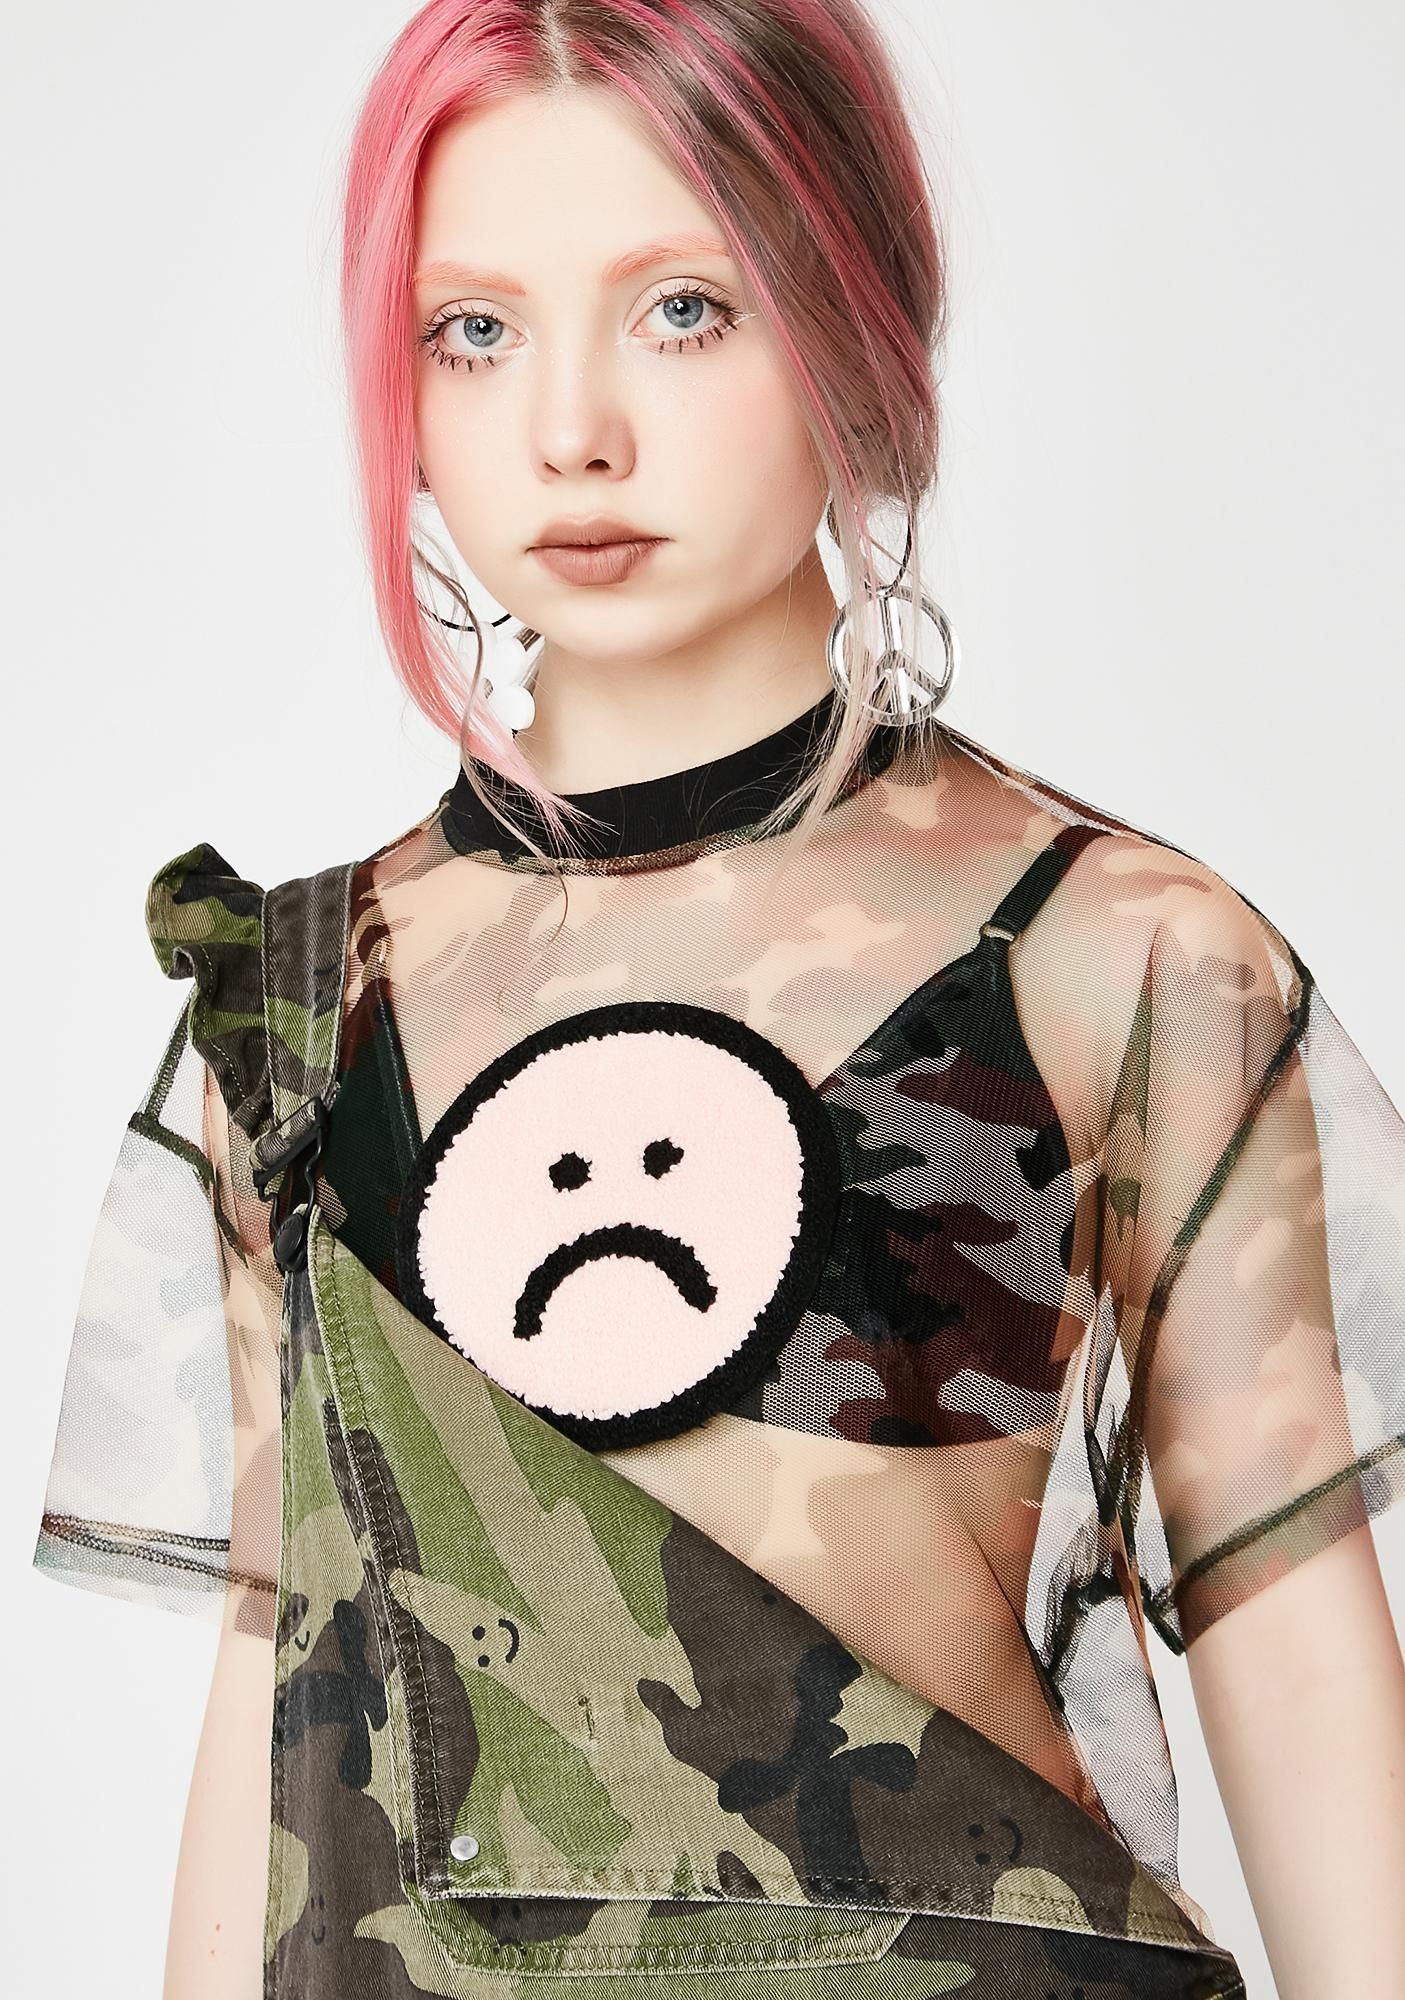 Camo Mesh Tee #boydollsincamo Lazy Oaf Camo Mesh Tee at Dolls Kill, an online punk, goth, rave, kawaii, and streetwear clothing store. FAST & FREE WORLDWIDE SHIPPING. Shop trends and your favorite brands like Lime Crime, Wildfox Couture, Killstar, BOY London, and Y.R.U. #boydollsincamo